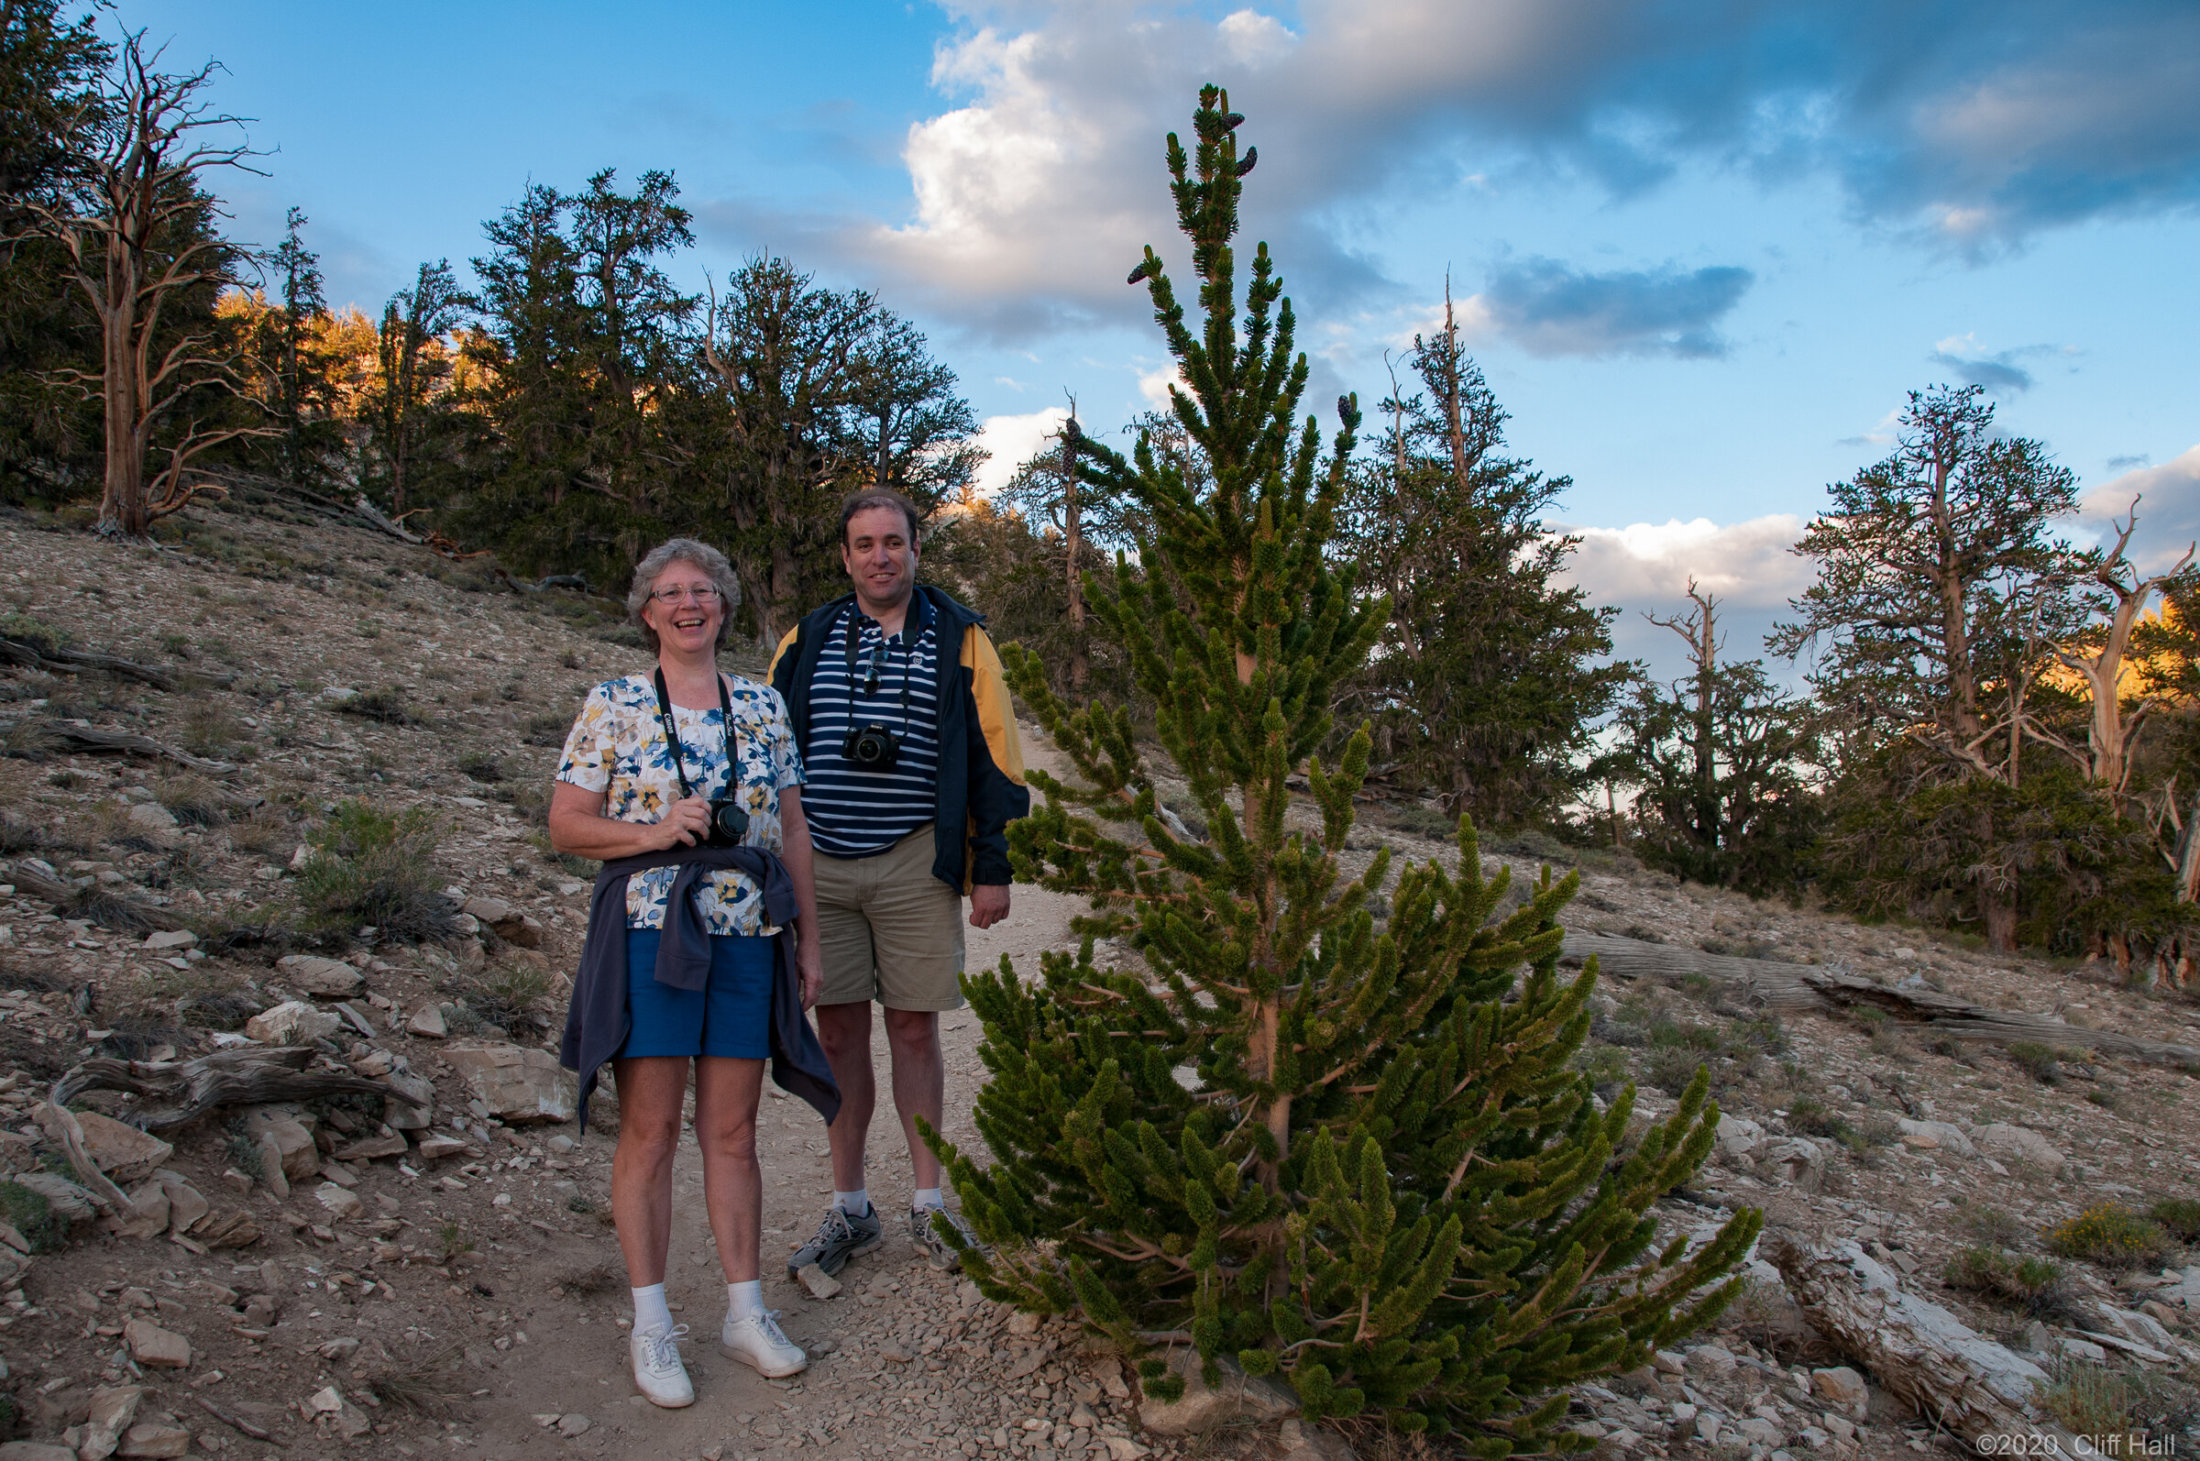 Susan and Garth at Bristlecone Pine Forest